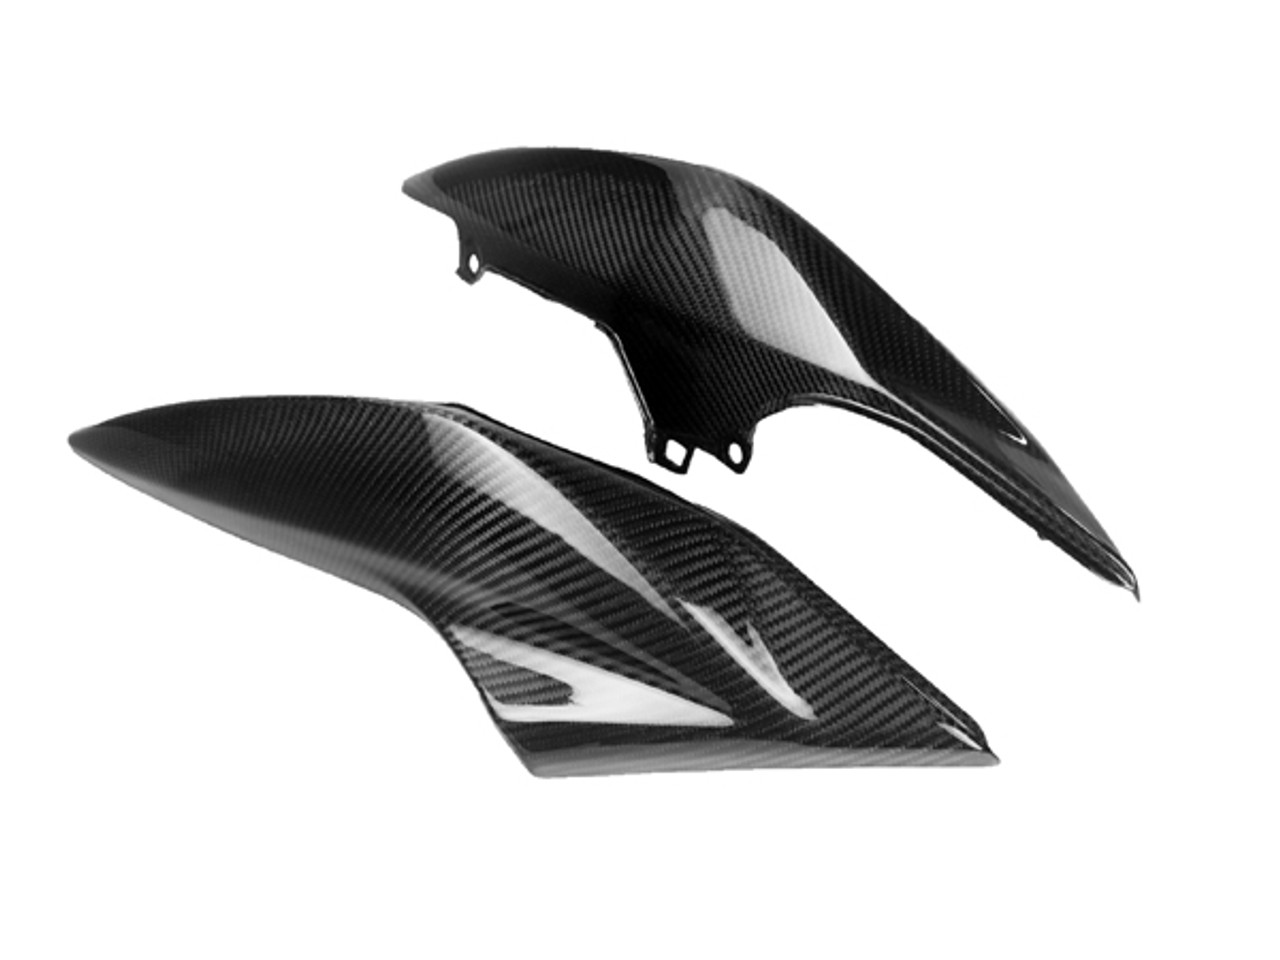 Seat Section- in Glossy Twill Weave Carbon Fiber for Kawasaki Z 750 07-12, Z1000 07-09